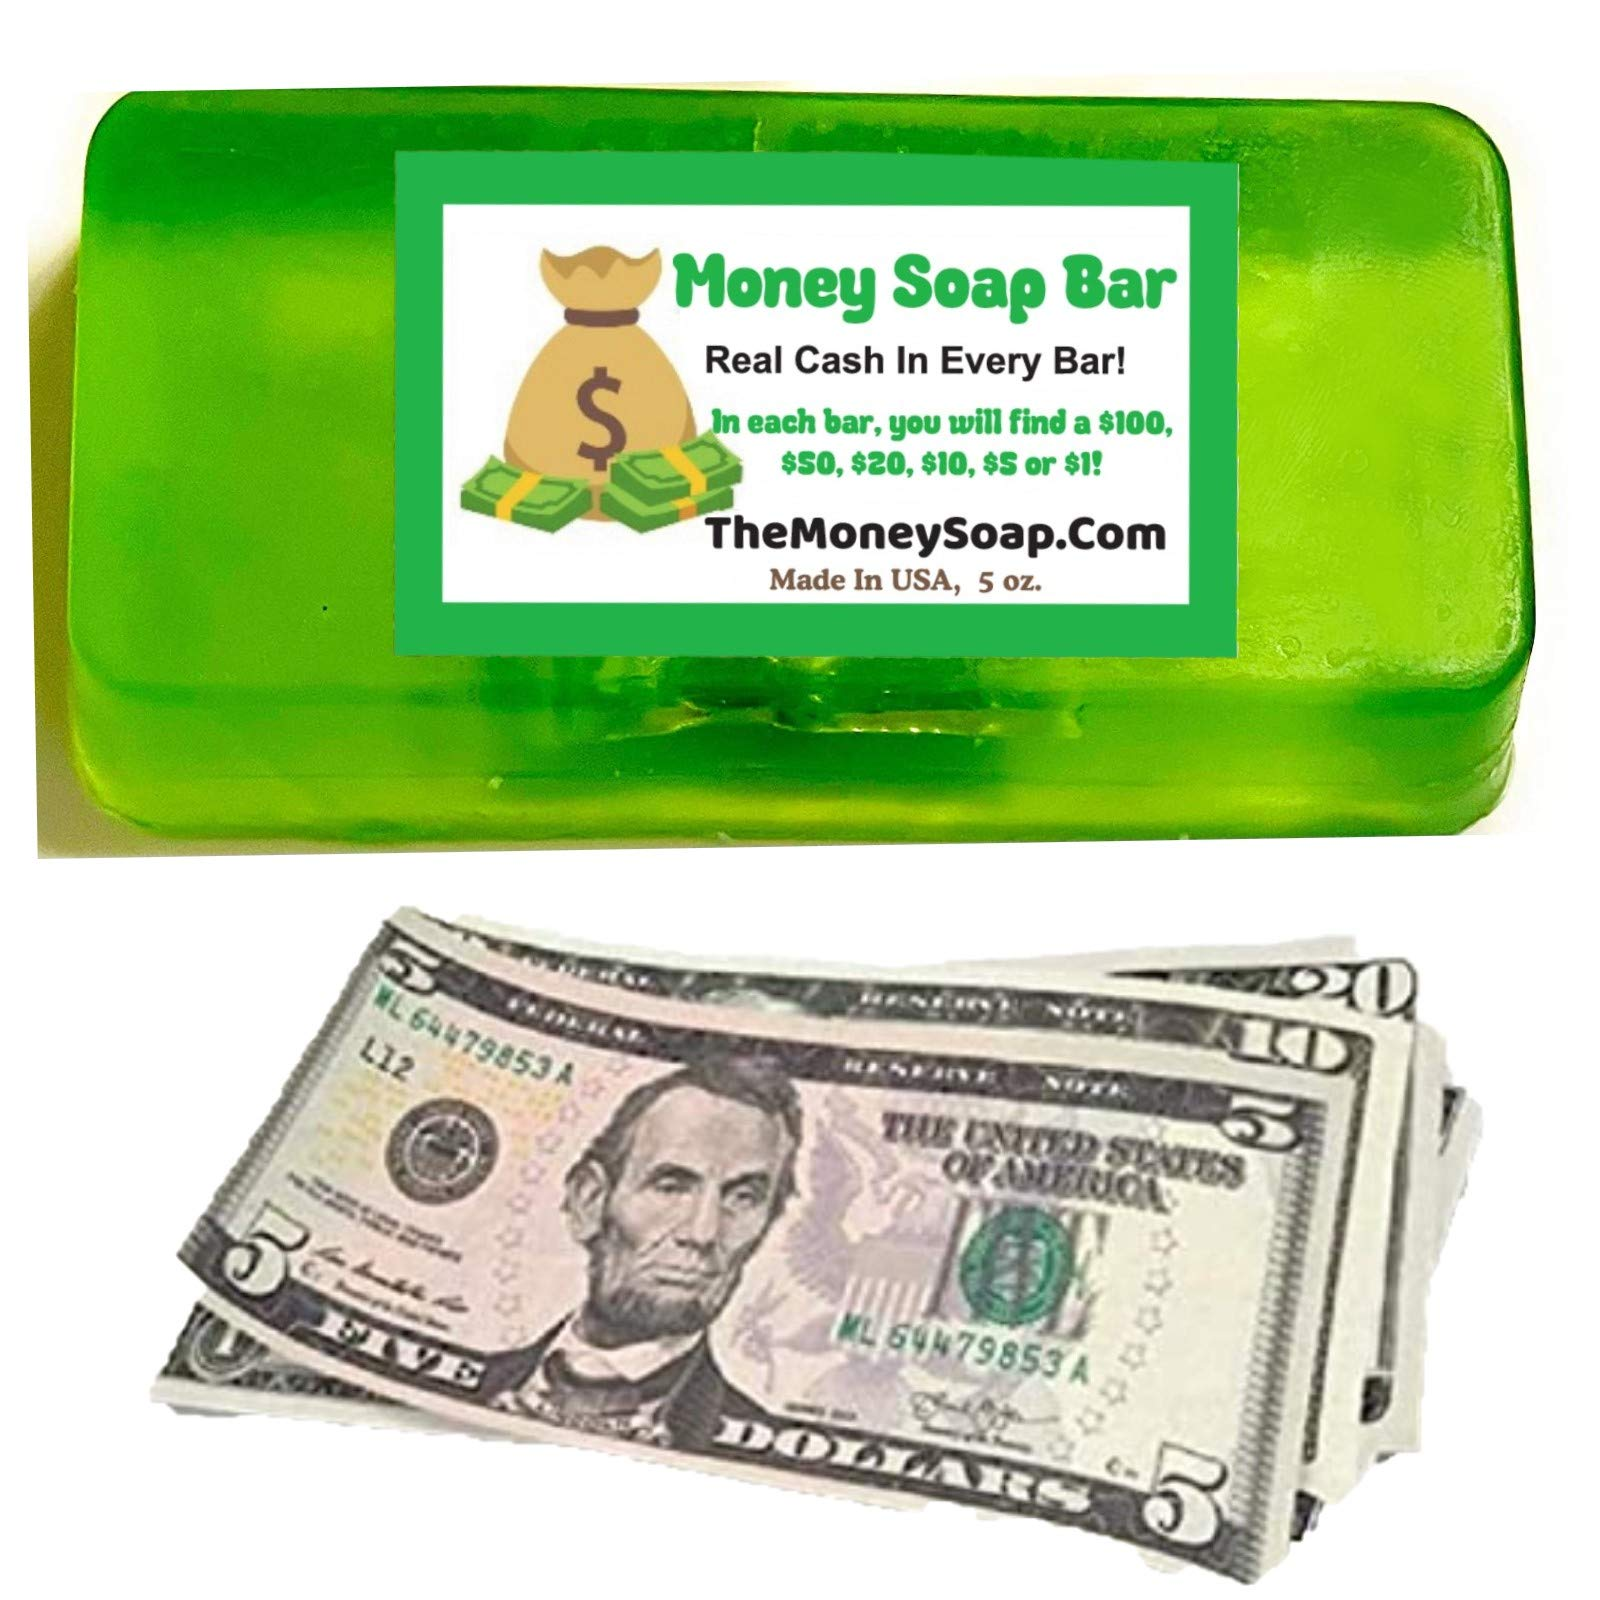 Money Soap Jackpot Real Cash In Every Bar, Practical Joke Gag Gifts, Green With A Fruity Scent, Fun Gifts For Him Or Her, Up To 100 In Each One, Made In USA